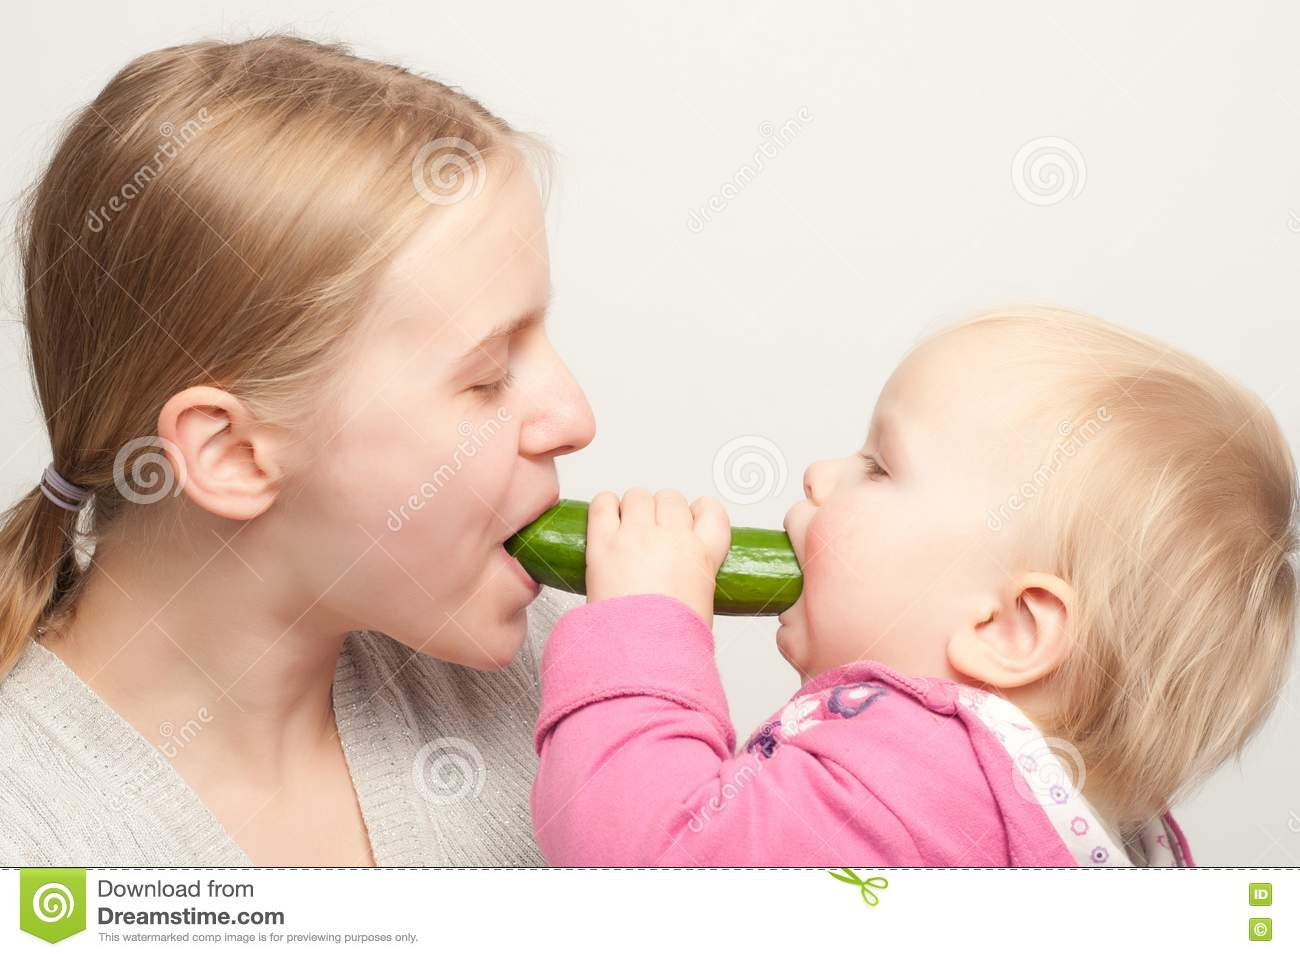 Mother With Daughter Eat Cucumber Stock Photos - Image: 16748293